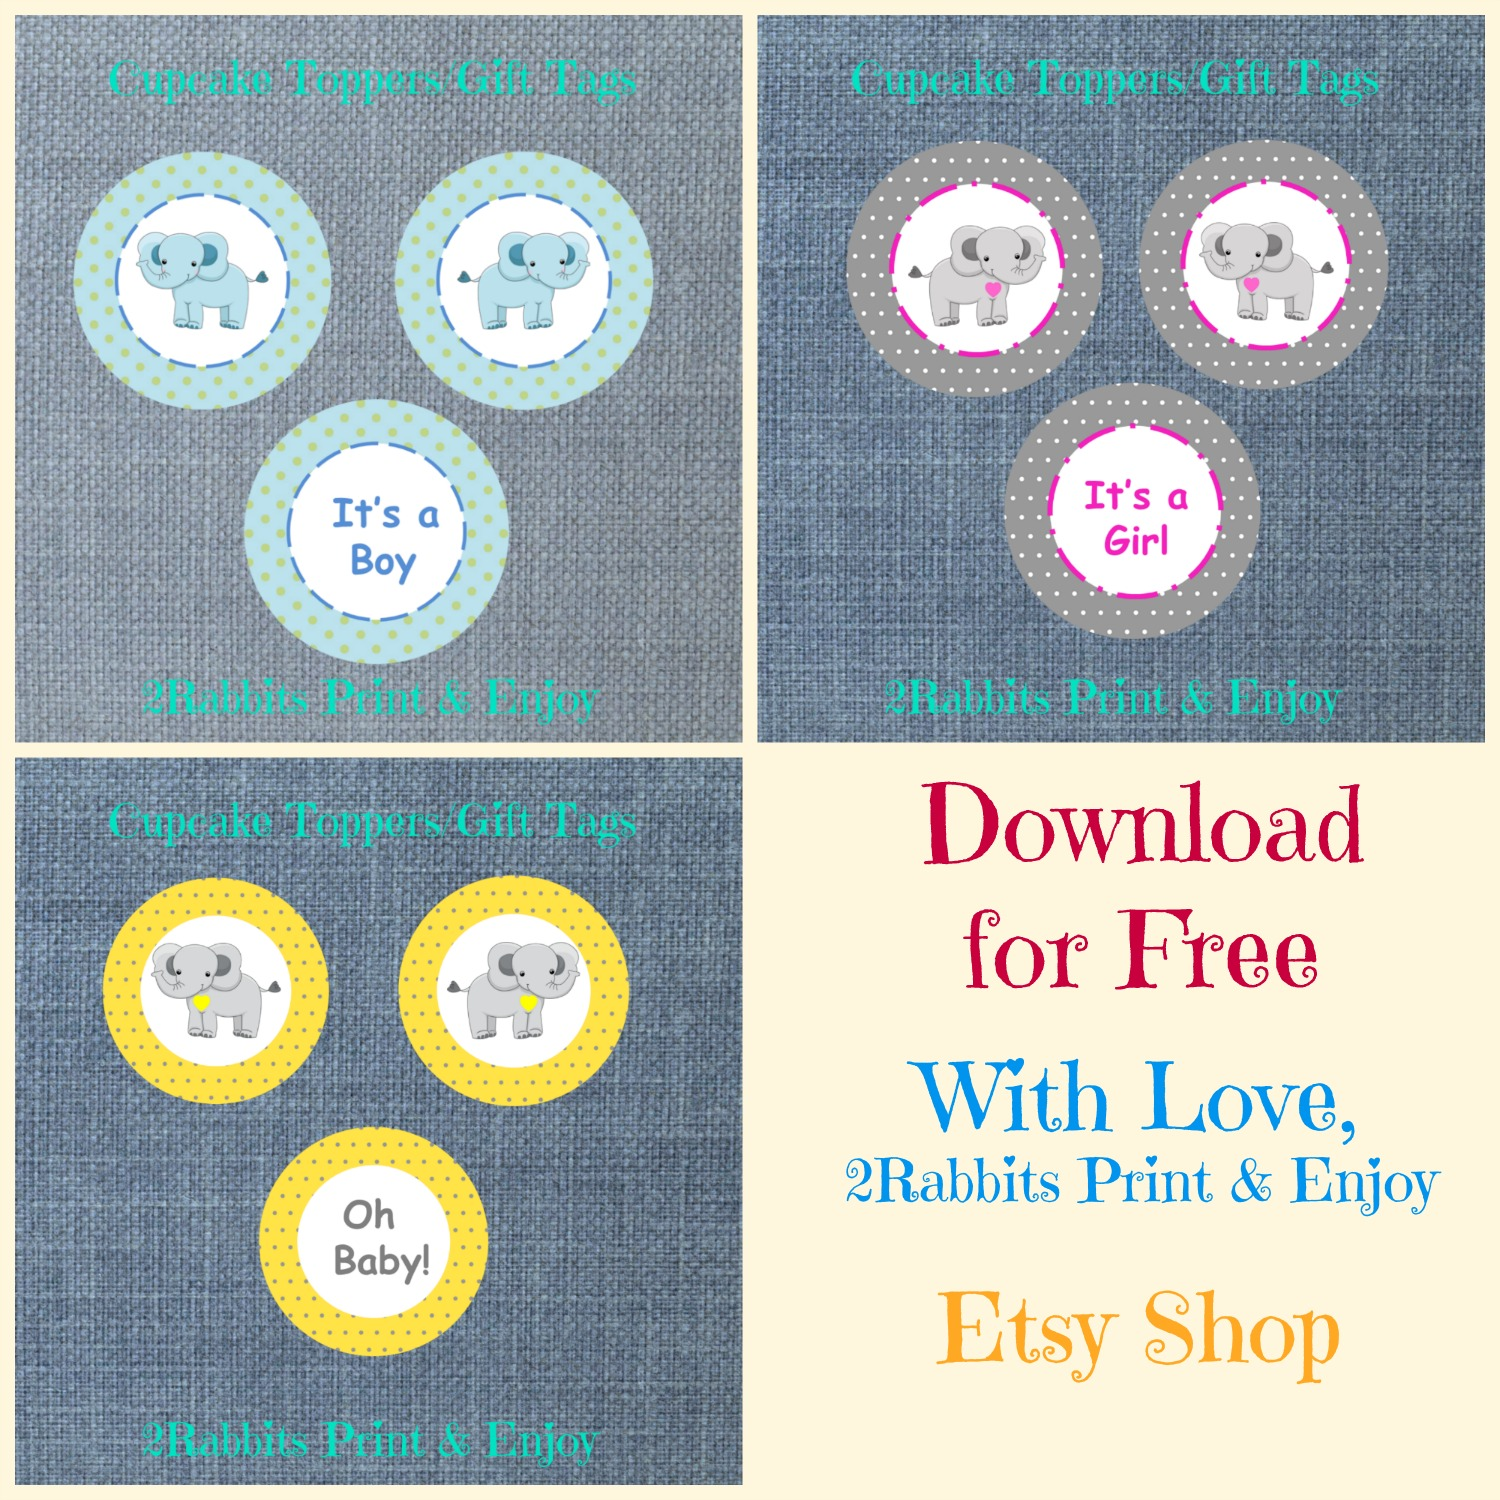 Free Printable Elephant Cupcake Toppers or Gift Tags